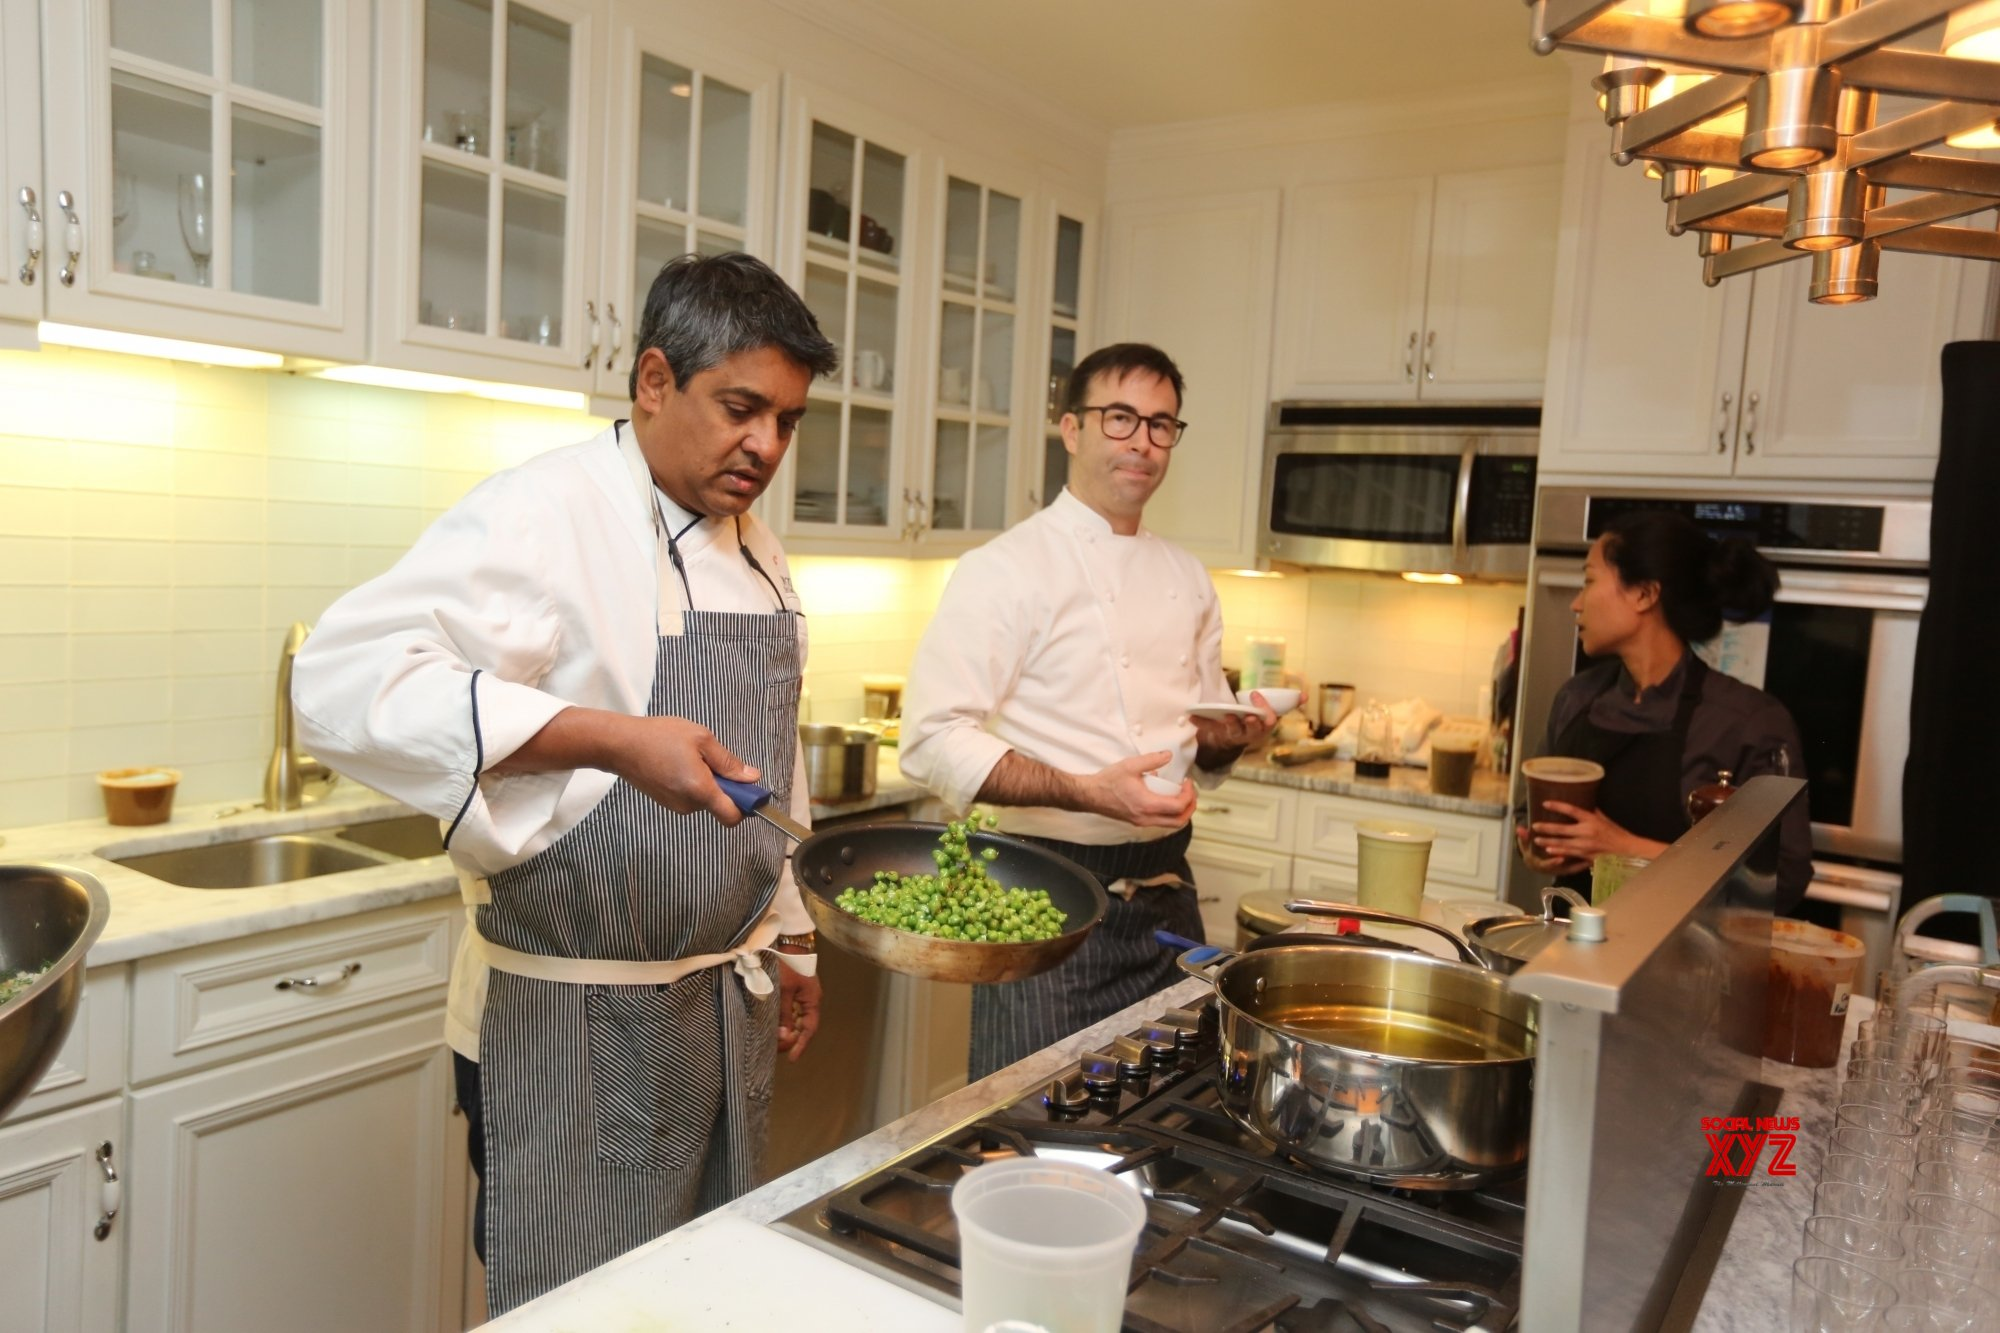 New York: Famed chef Floyd Cardoz passes away due to Covid - 19 #Gallery